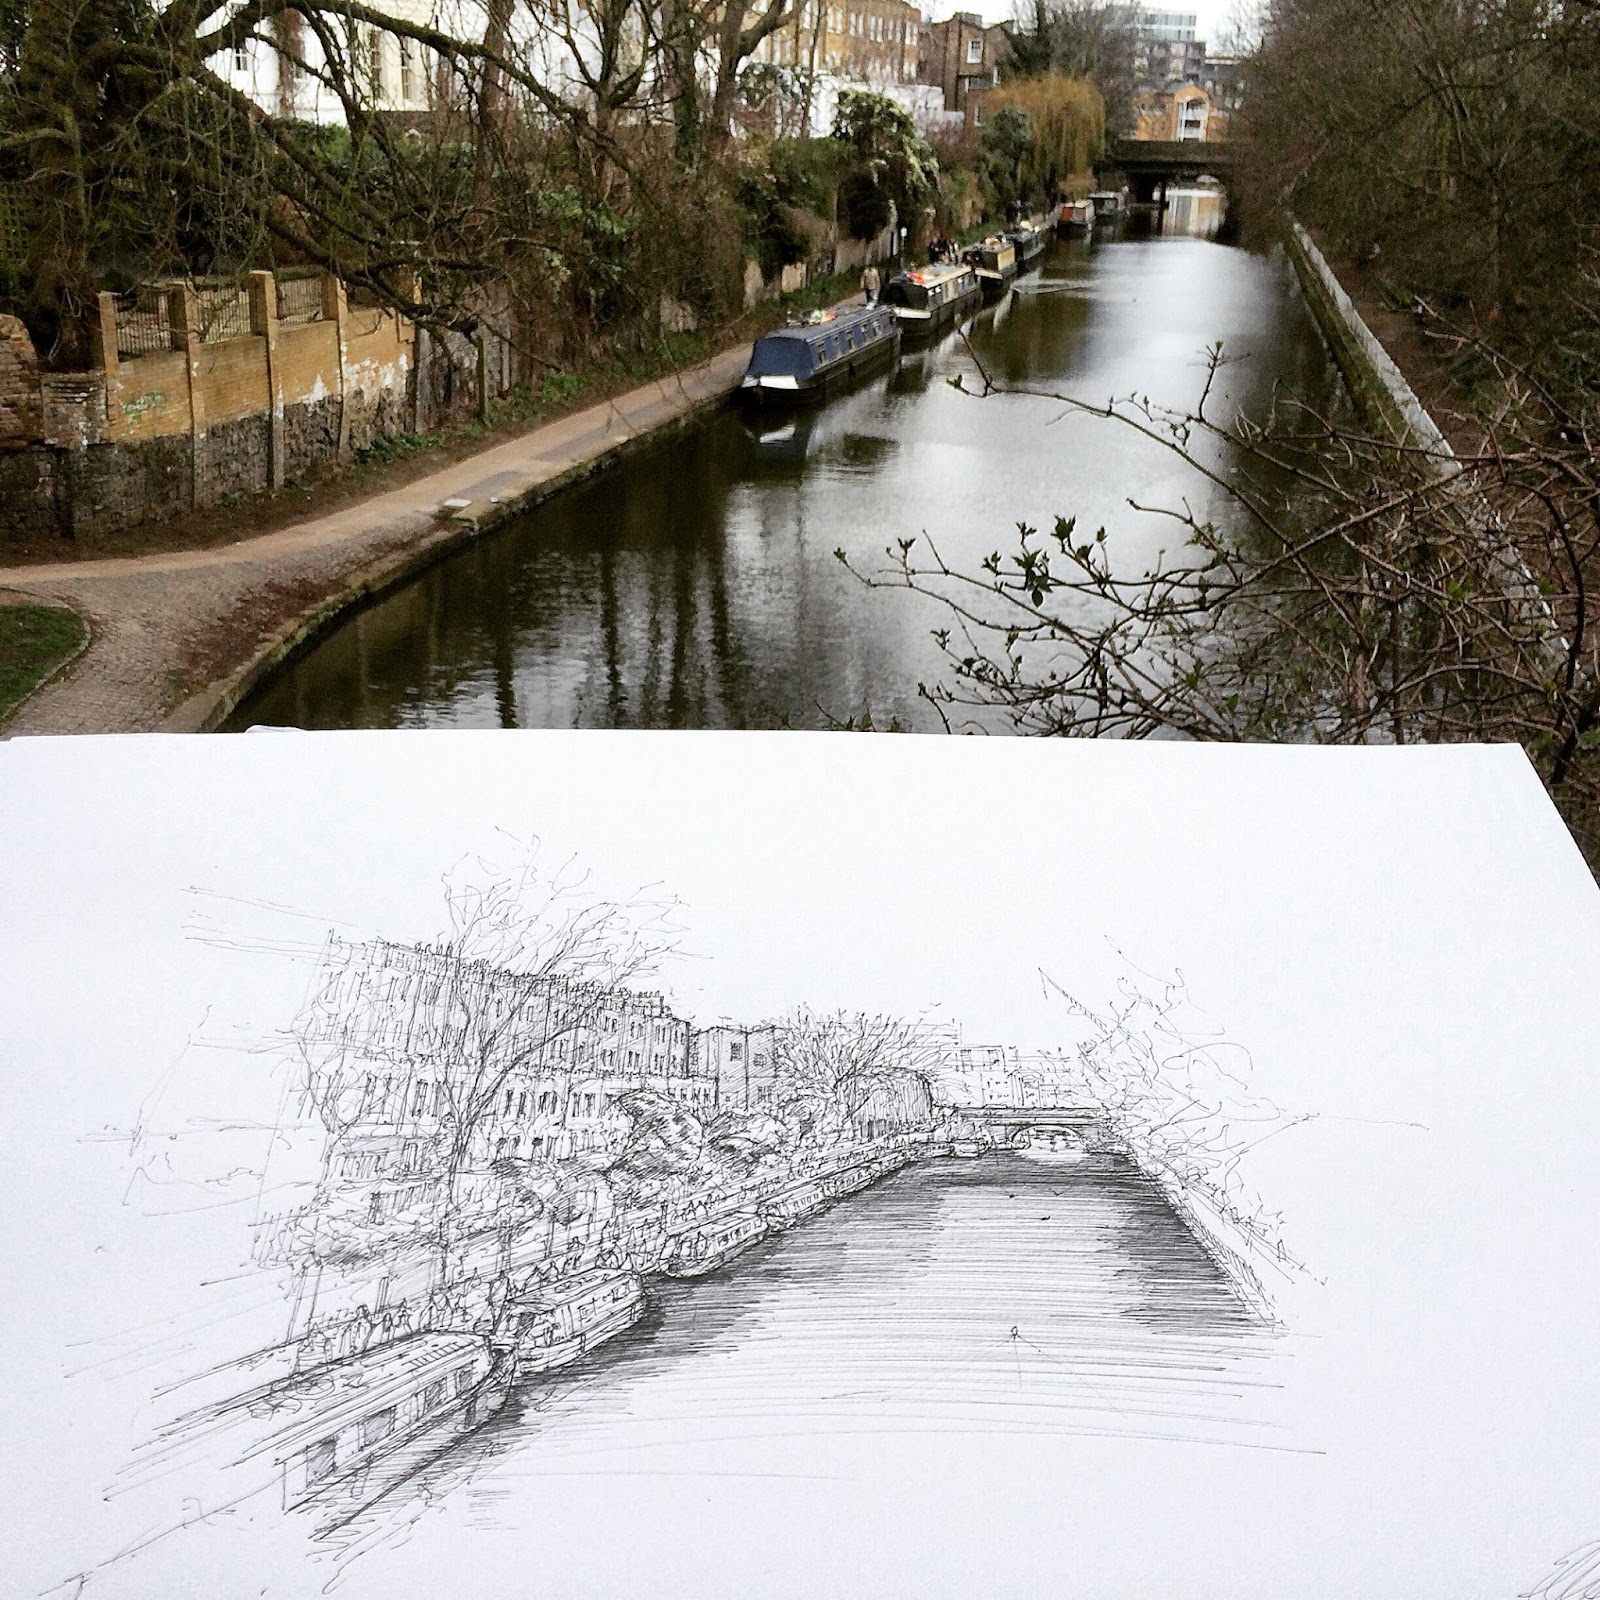 04-Colebrook-Row-Regents-Canal-Luke-Adam-Hawker-Creating-Architectural-Drawings-on-Location-www-designstack-co